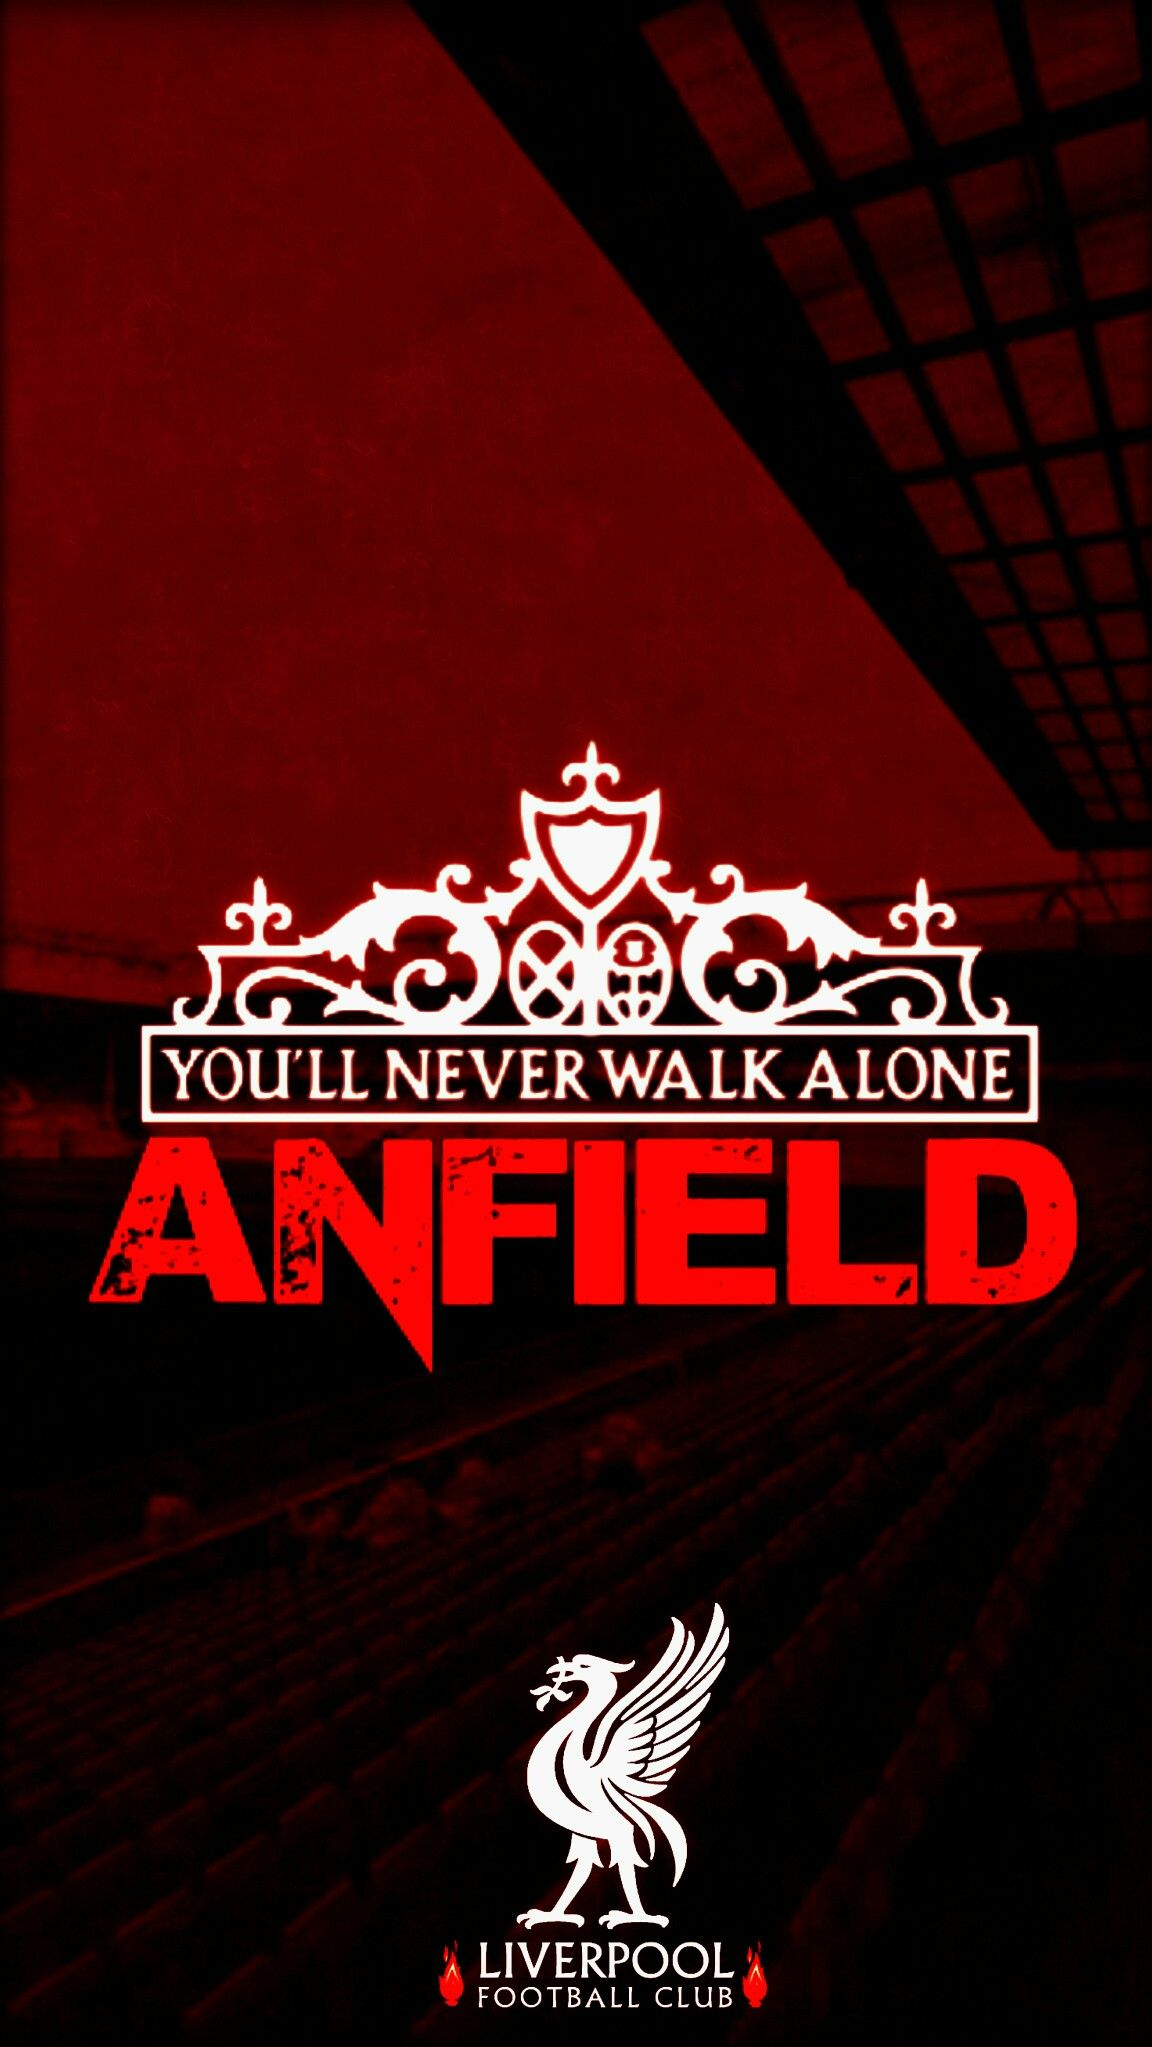 Anfield Liverpool Wallpaper Kolpaper Awesome Free Hd Wallpapers